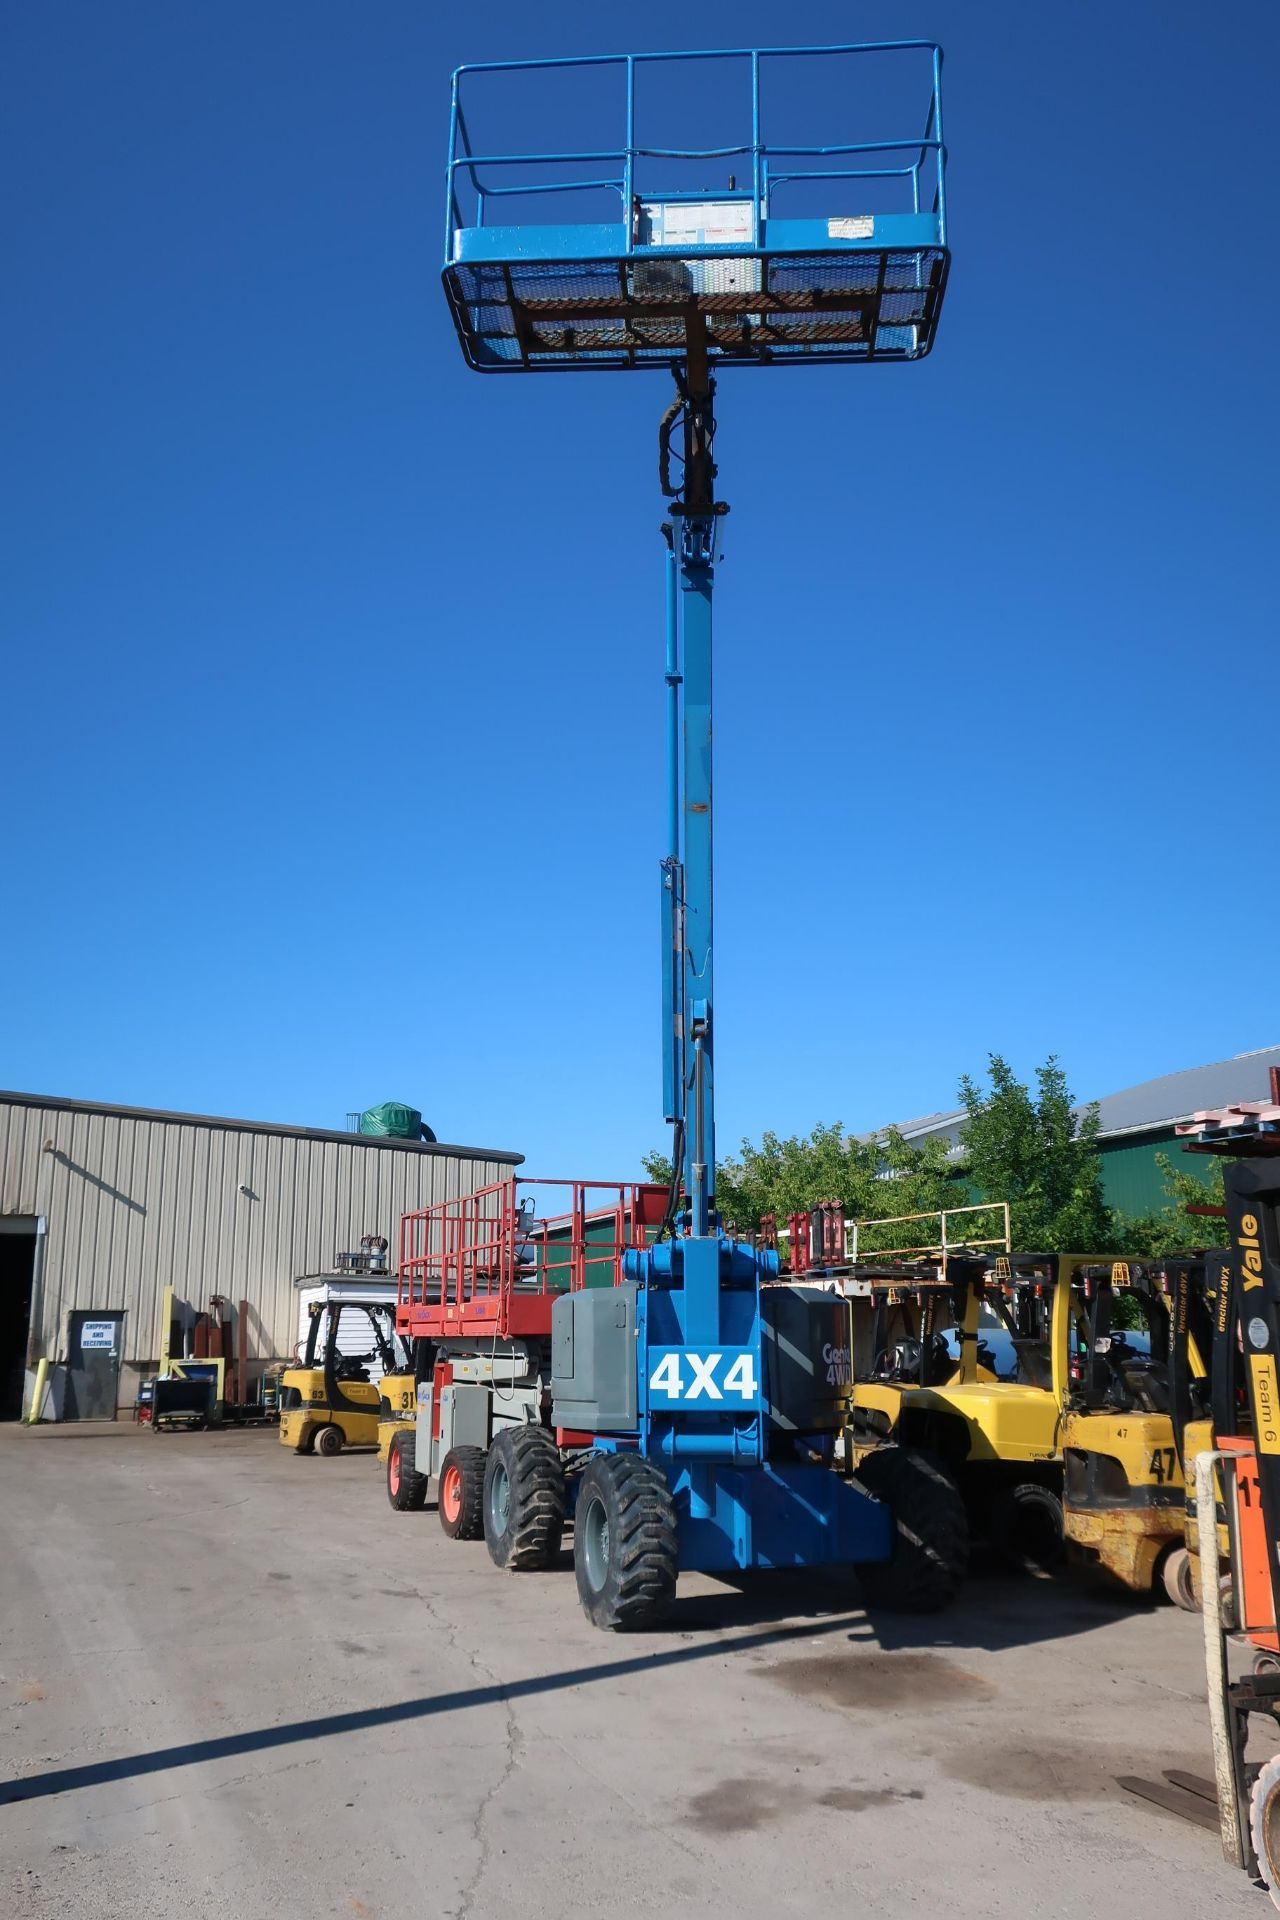 Lot 2 - MINT Genie Boom Lift model Z-60/34 with 60' platform height with LOW hours